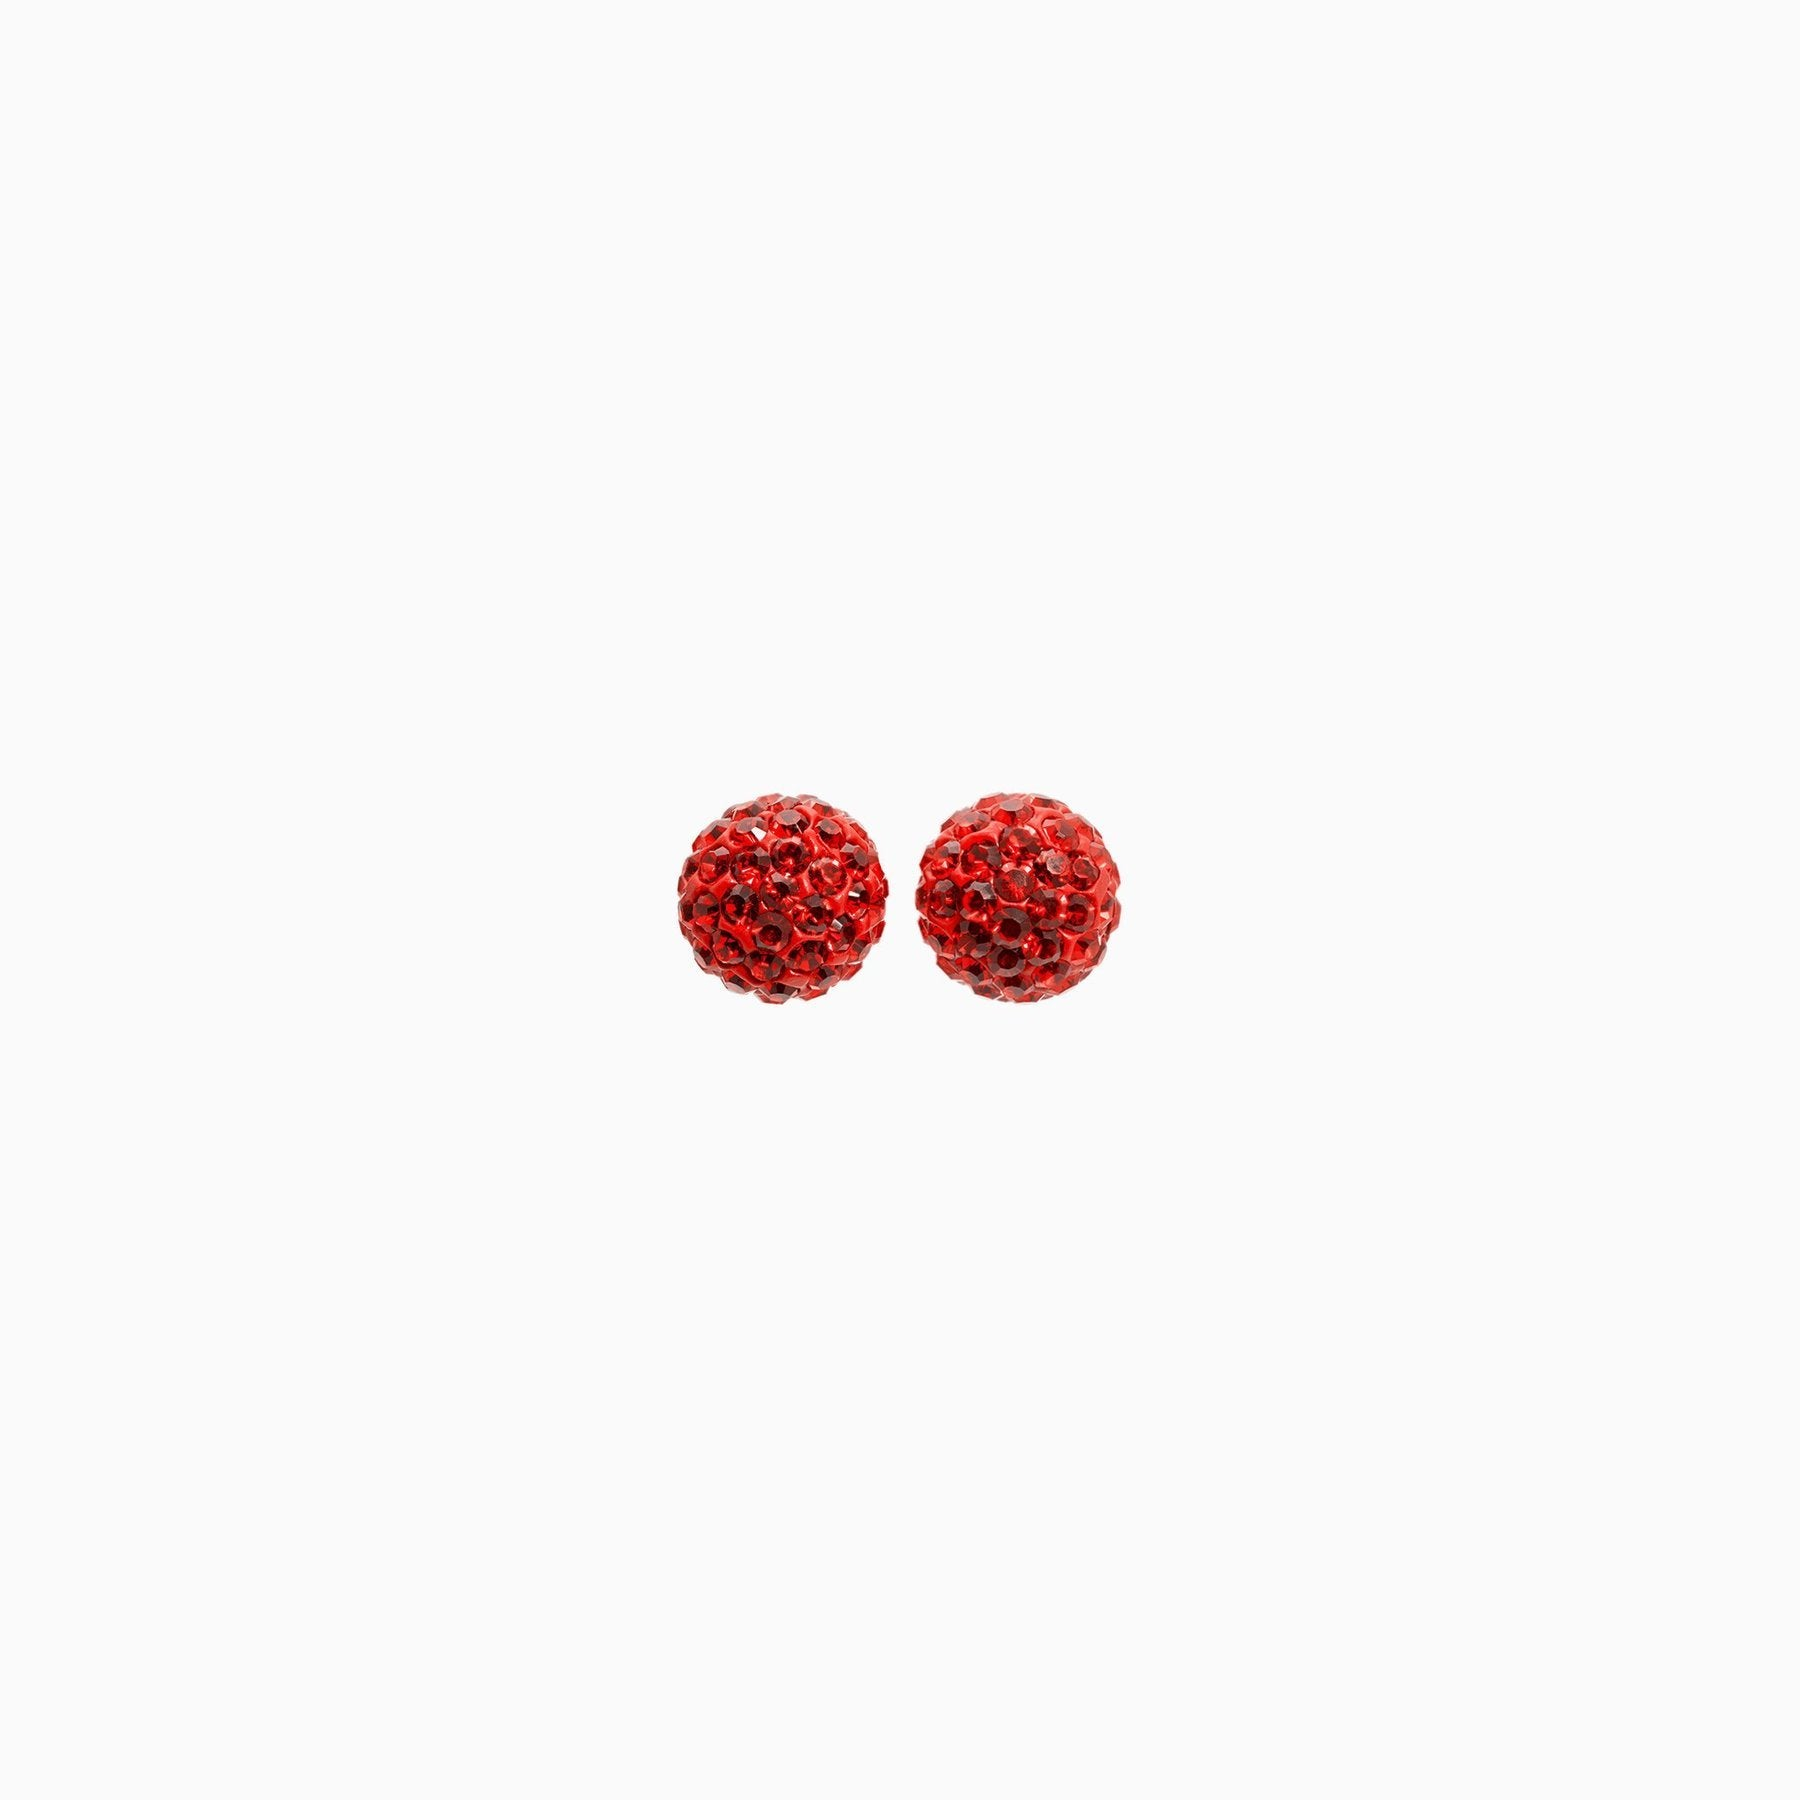 H&B Sparkle Ball™ Stud Earrings - 8mm Red